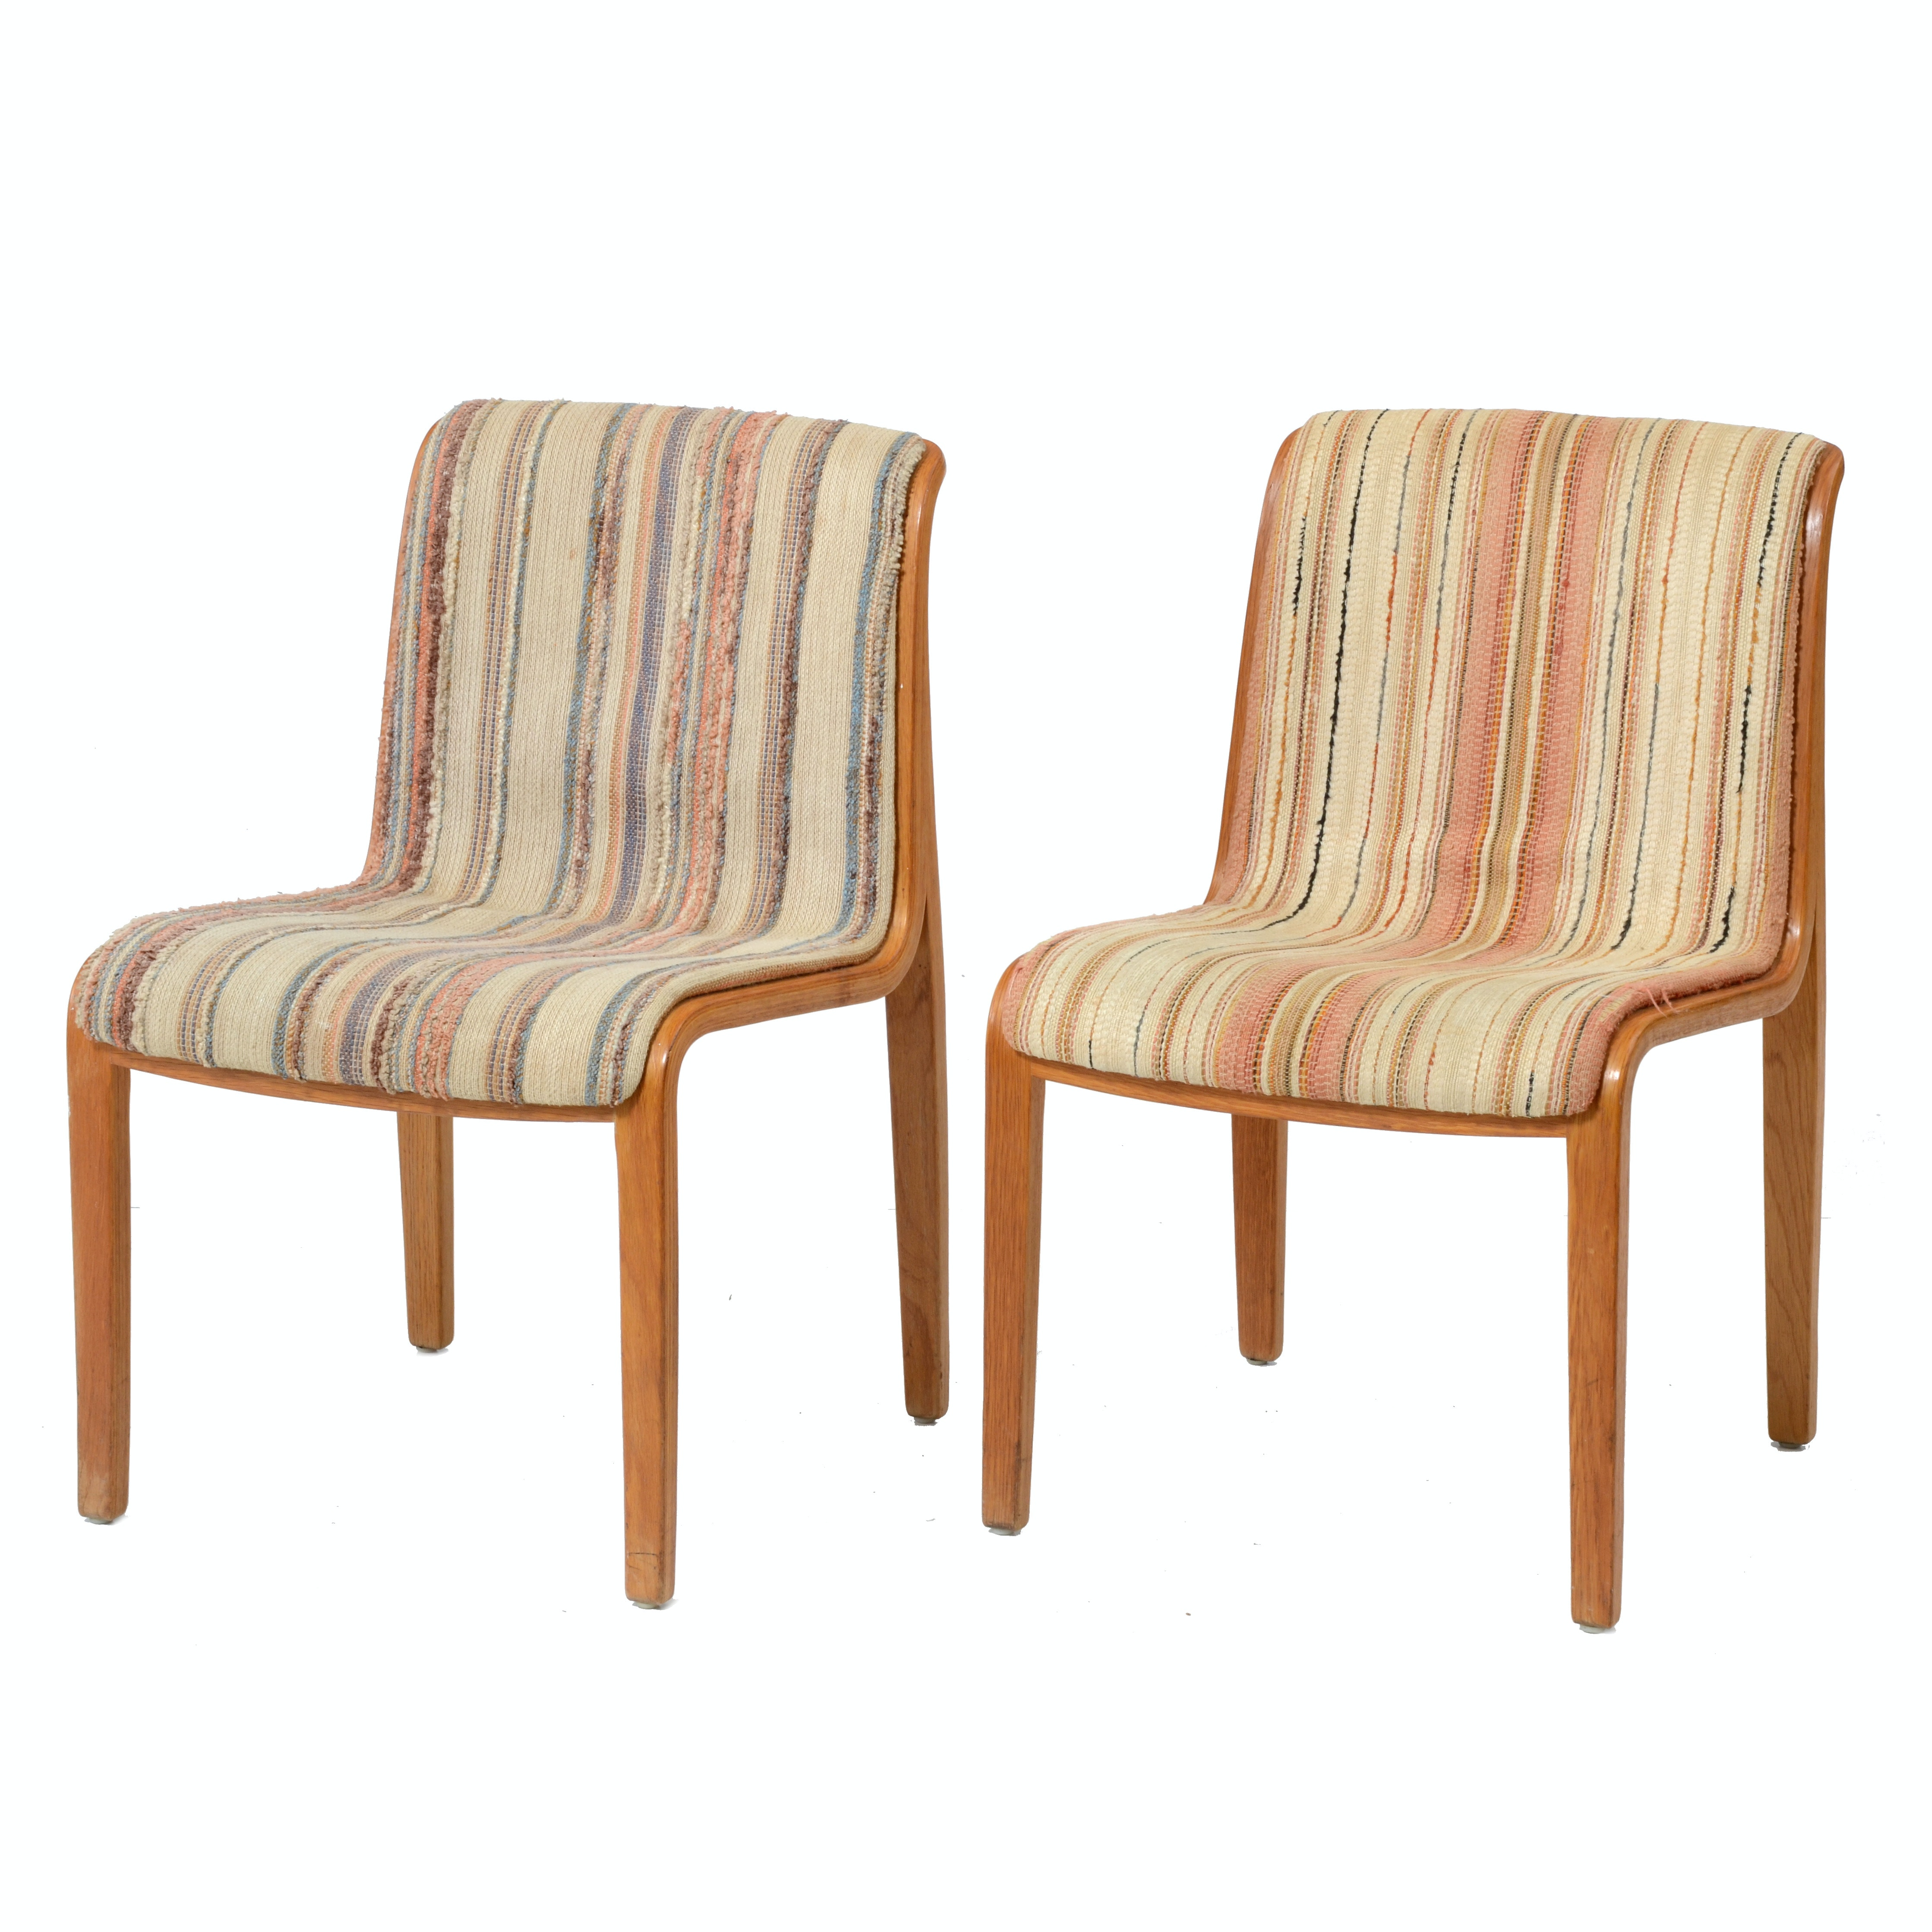 Vintage Mid Century Modern Knoll International Side Chairs